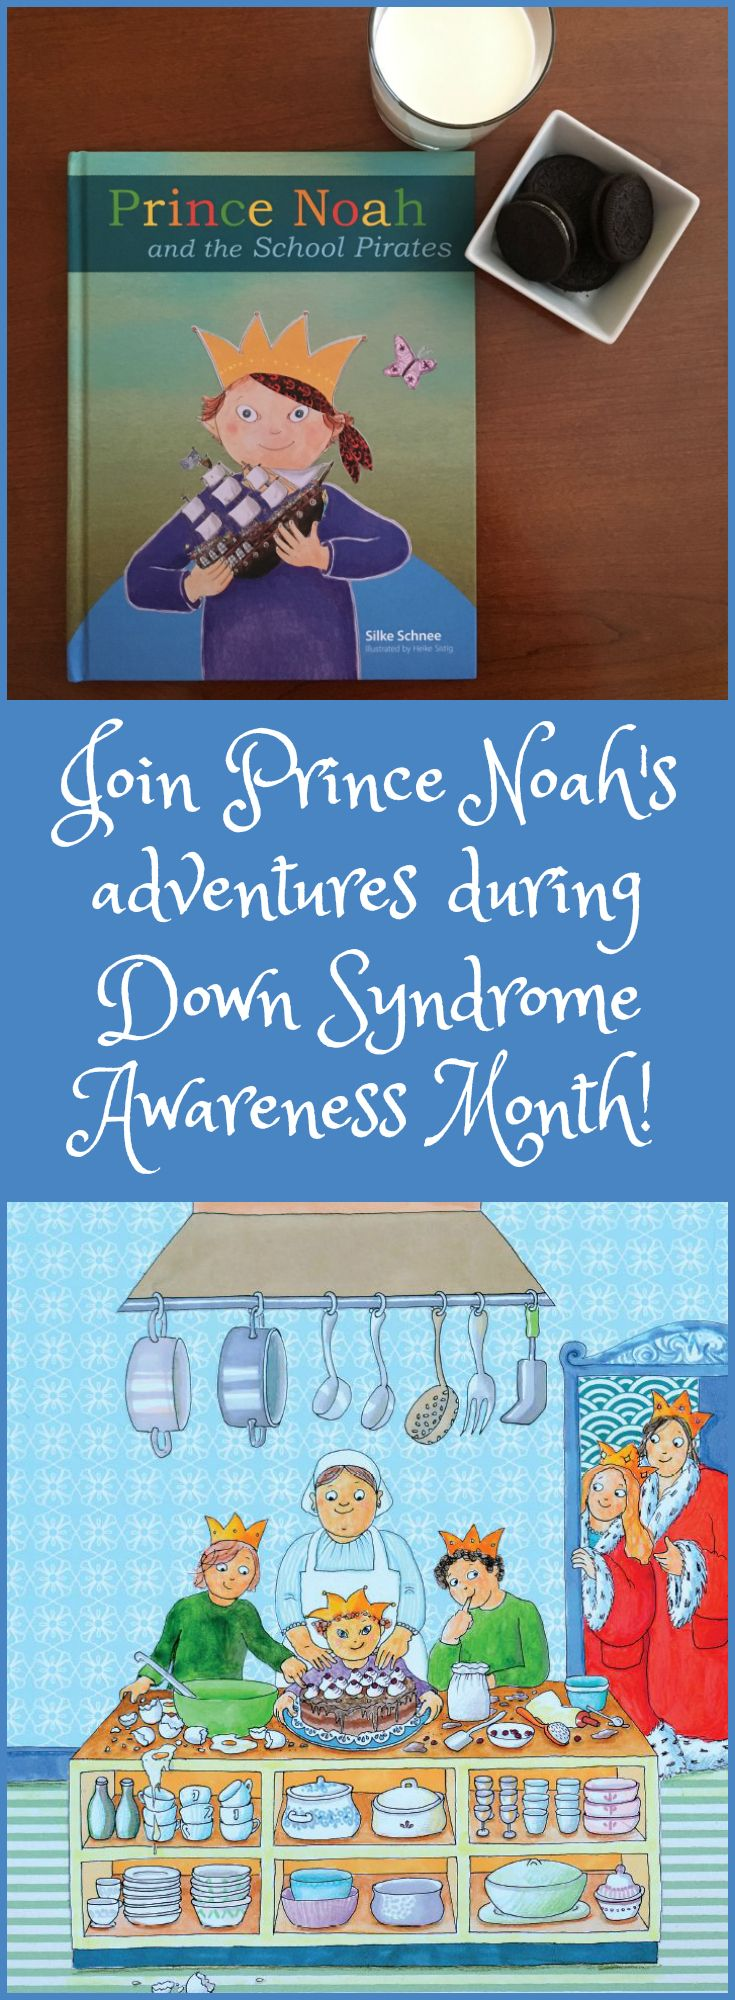 October is Down Syndrome Awareness Month, and Prince Noah helps kids of all abilities learn that Down Syndrome is Up! There's not much Prince Noah and his friends of all abilities can't do when they face a band of pirates together. This adventurous book captures children's imaginations while teaching important lessons about inclusion. More: http://www.plough.com/en/topics/community/education/prince-noah-and-the-school-pirates